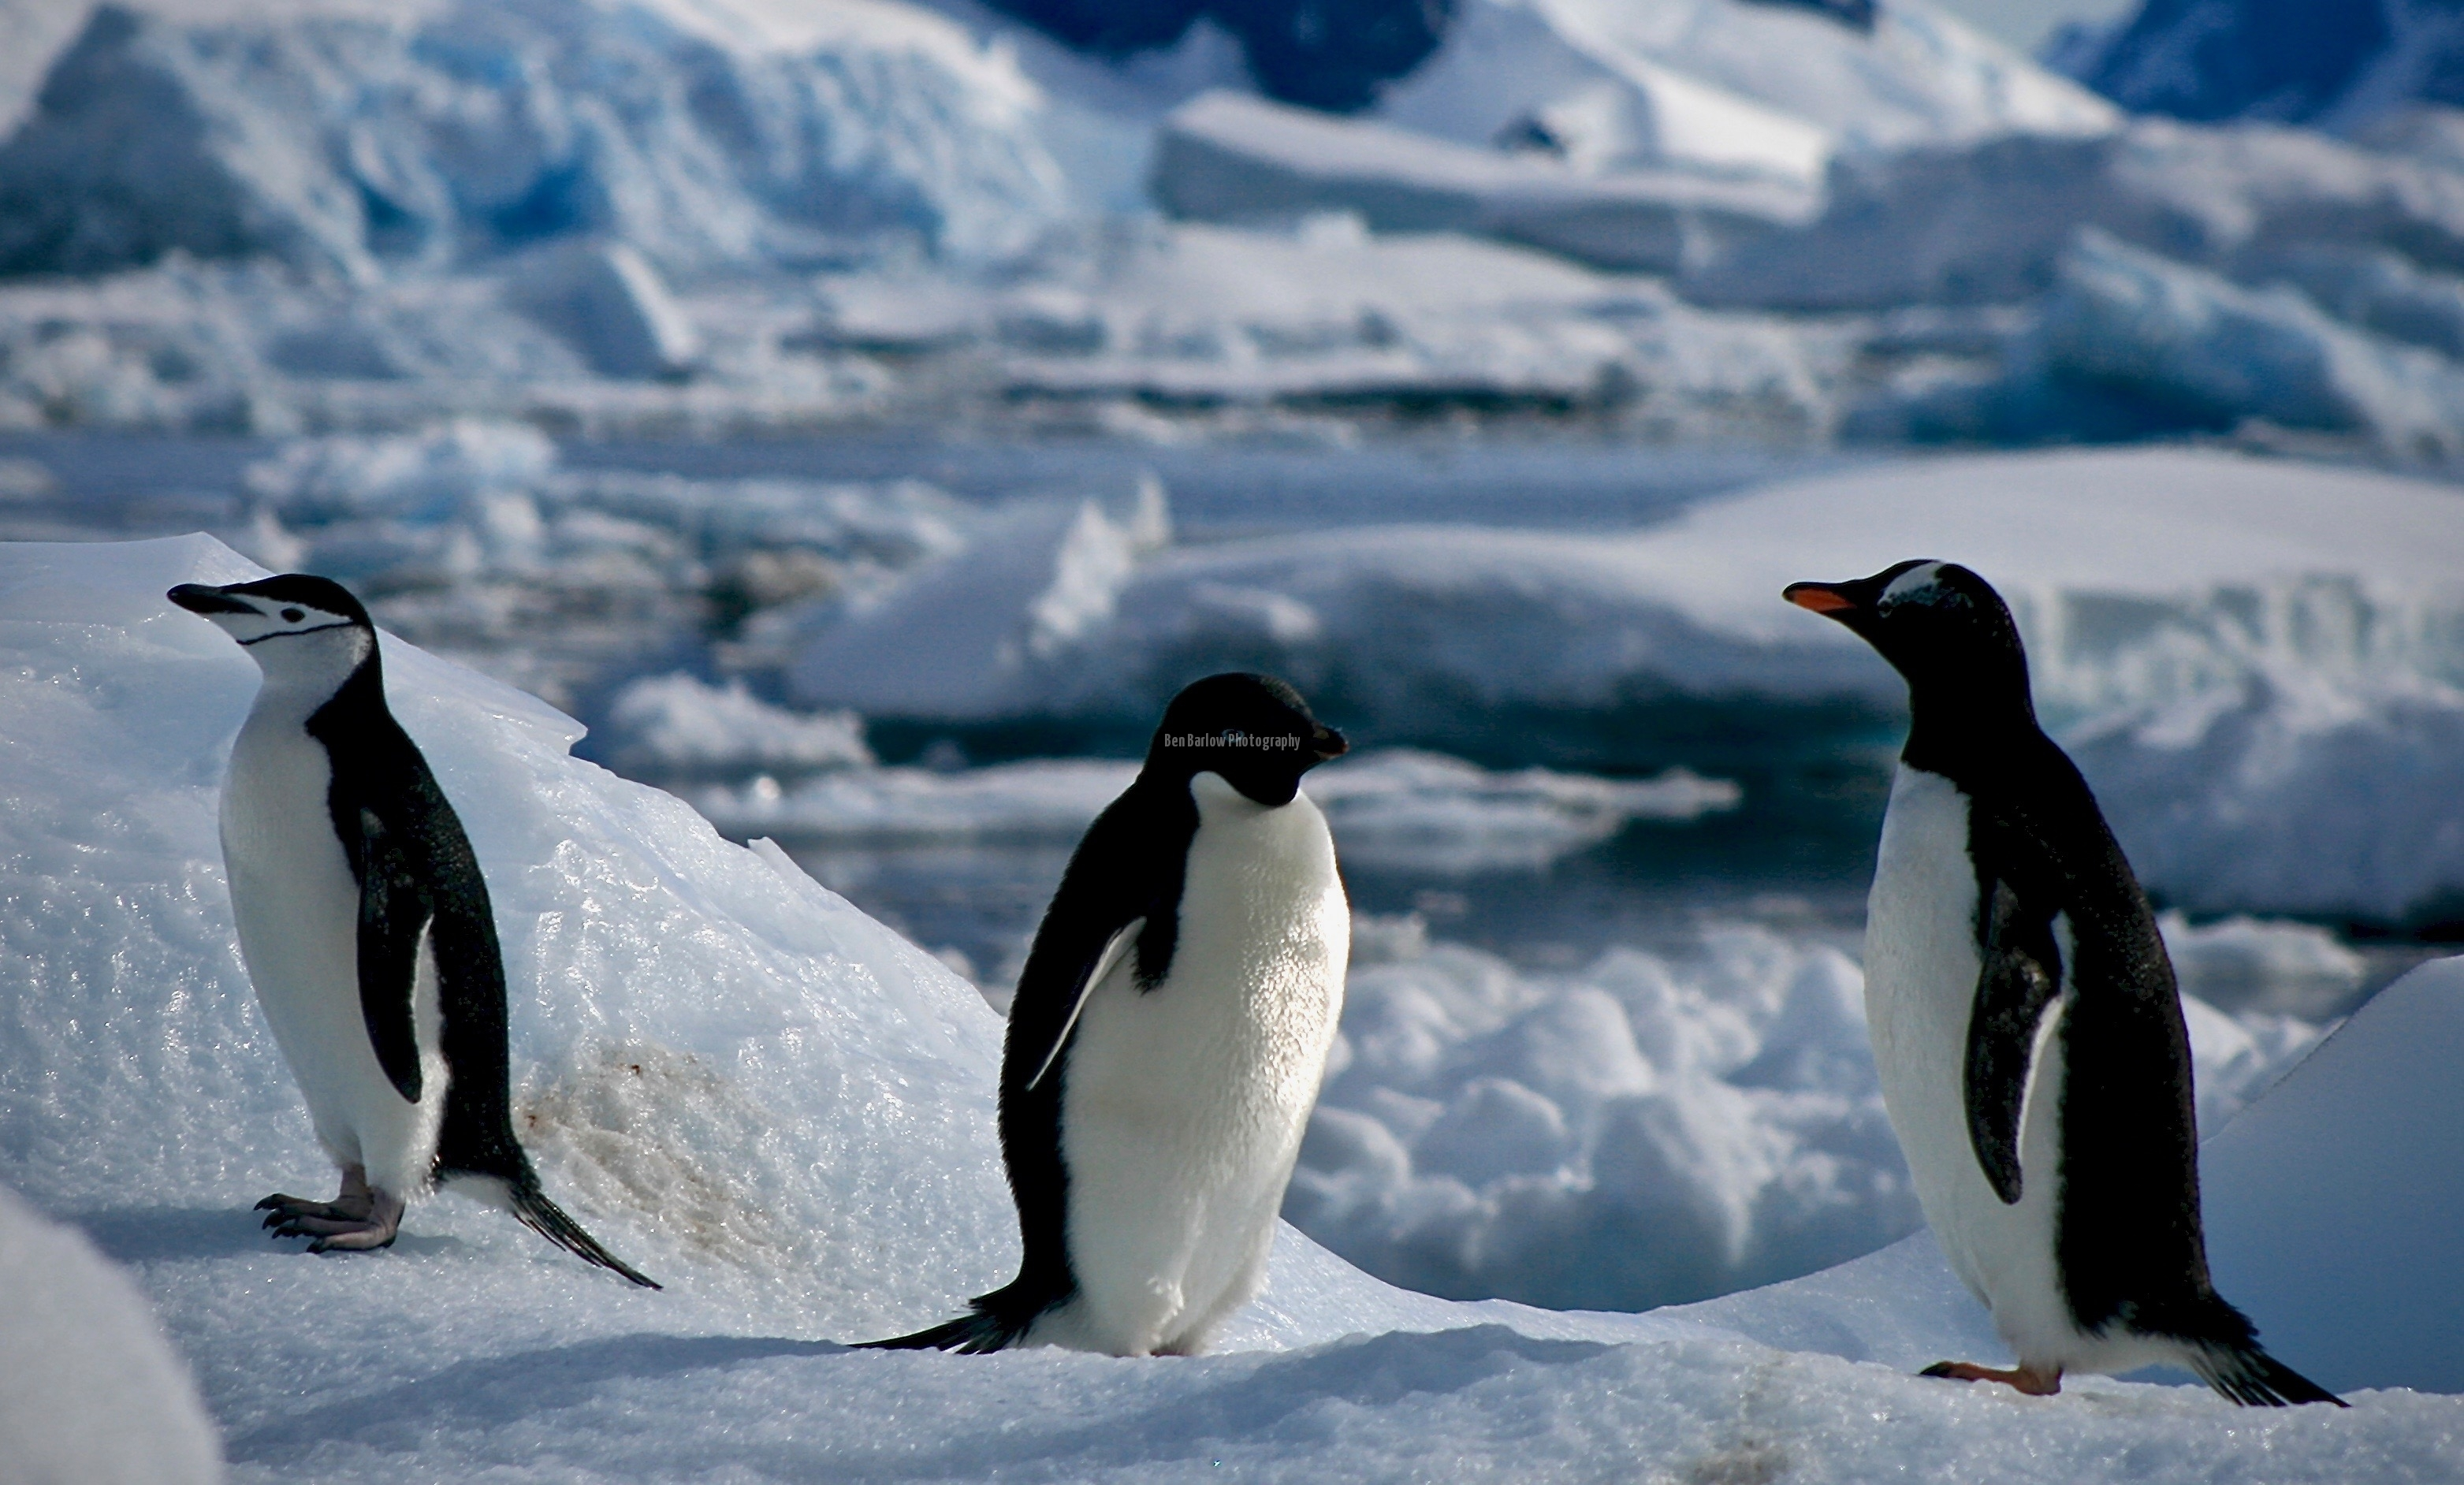 Adele, Chinstrap, and Gentoo on Ice